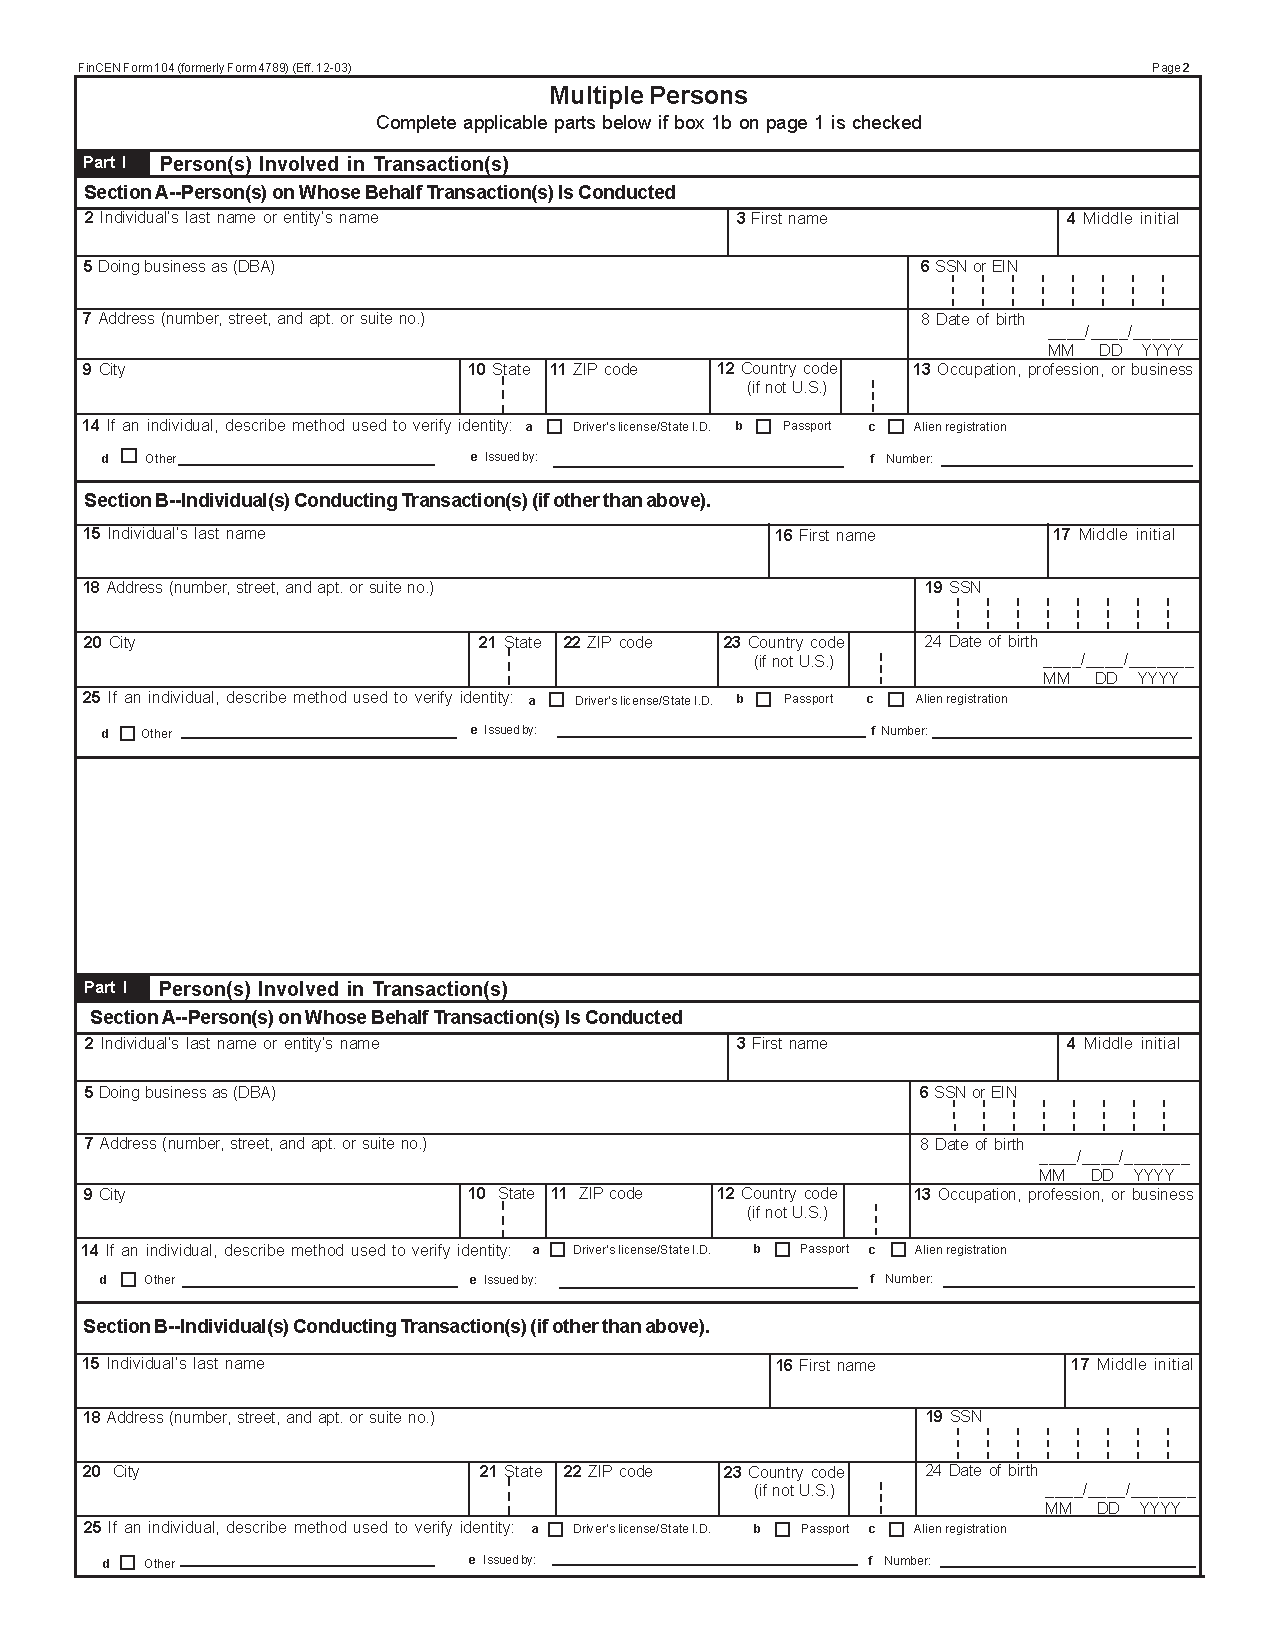 View all 2011 IRS Tax Forms